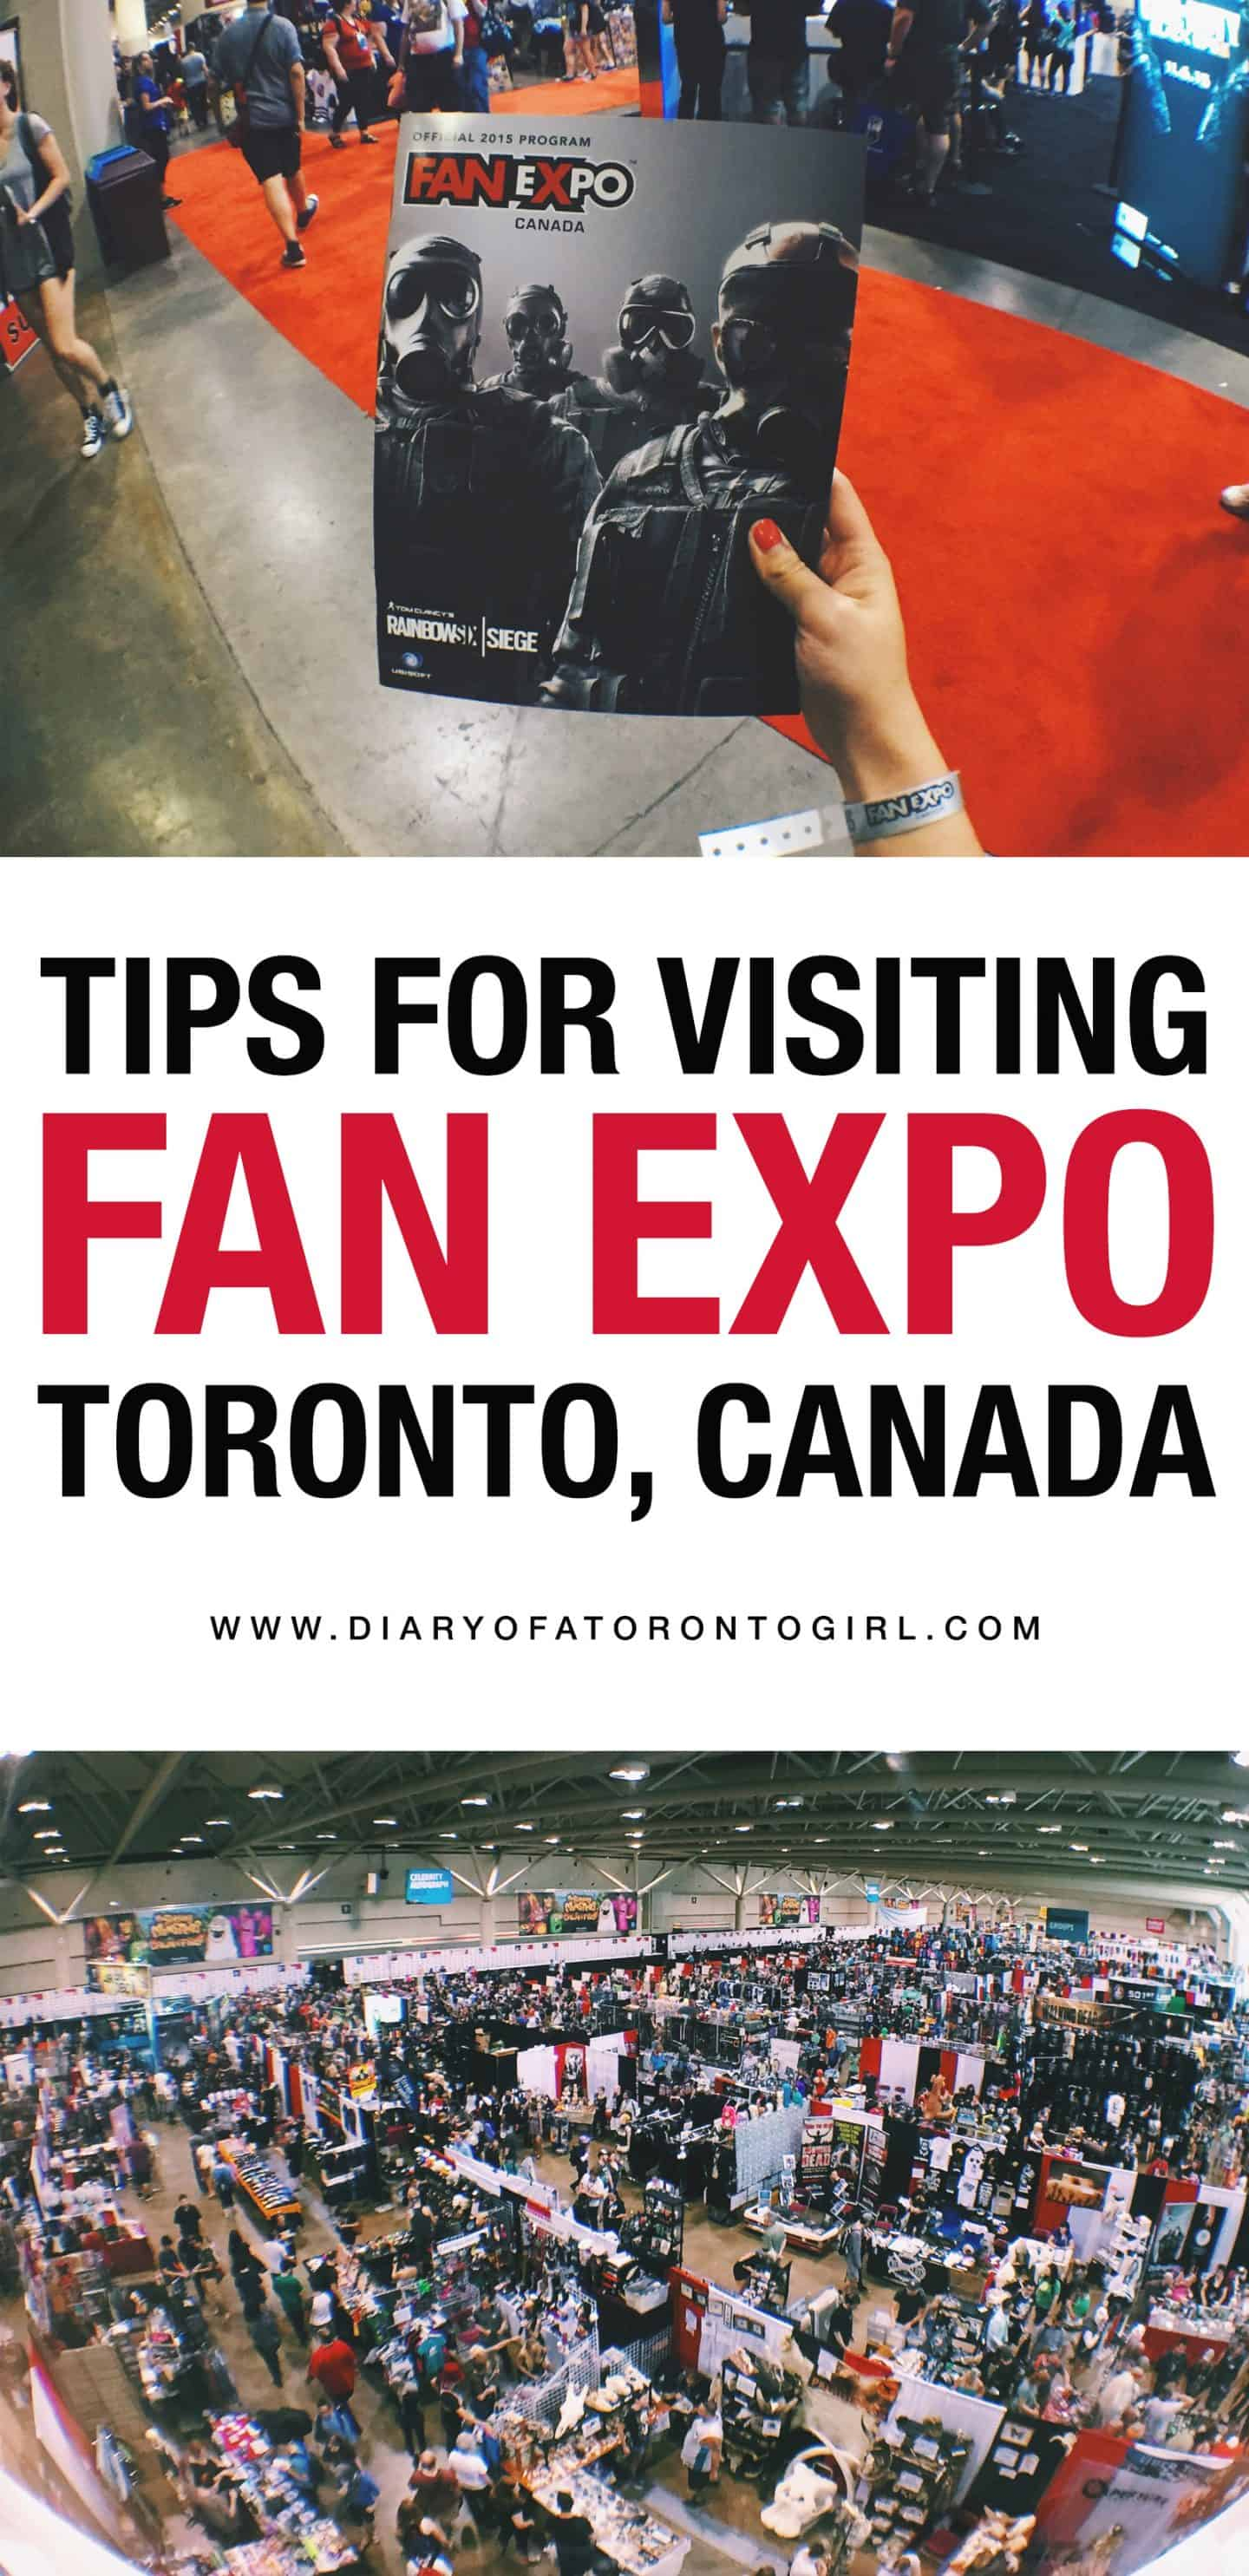 Looking to visit Fan Expo in Toronto, Canada? Here's a guide on what to expect for your first visit, as well as tips and things you should know!